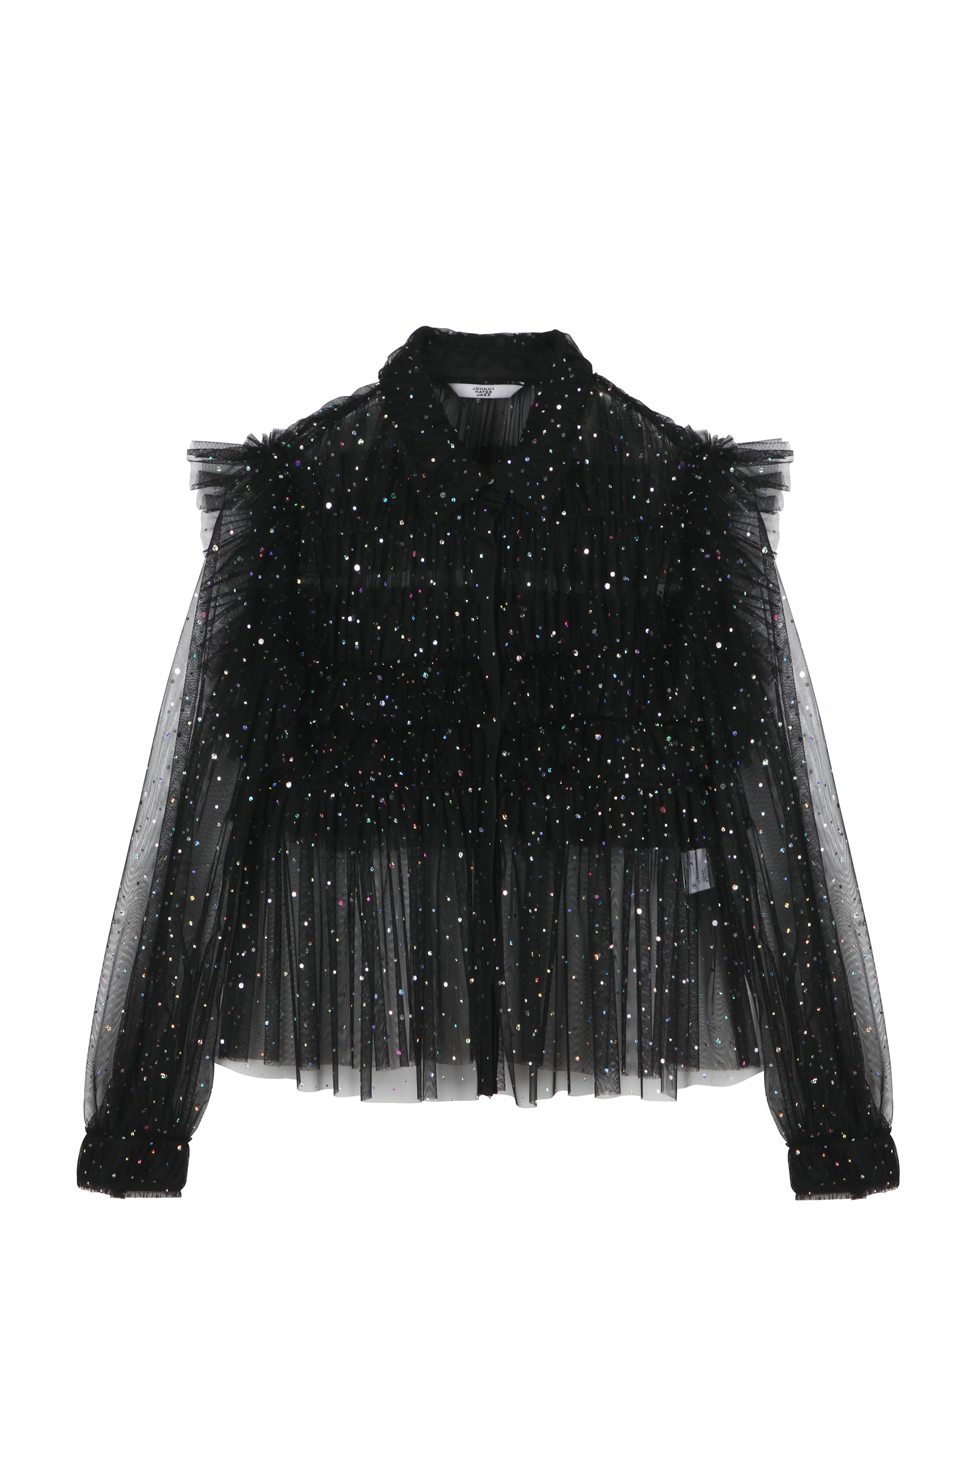 GLITTERED RUFFLE BLOUSE - BLACK